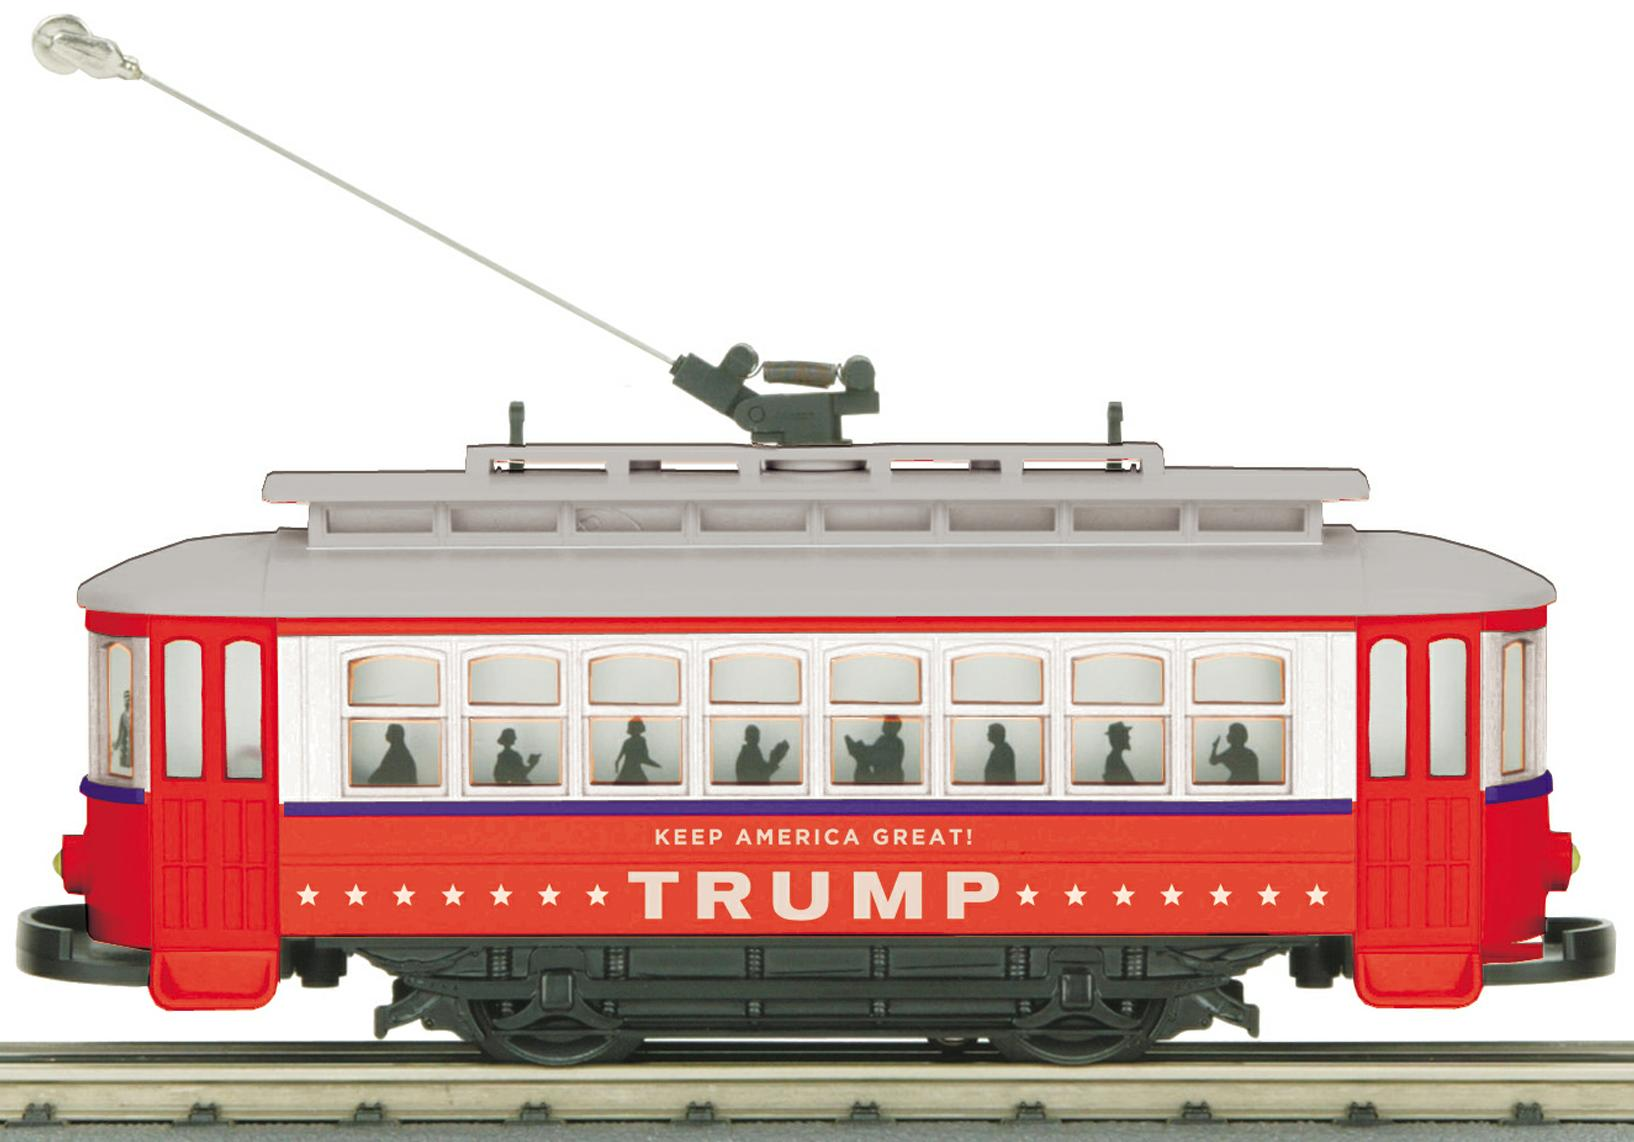 Donald Trump Bump-n-Go Trolley image